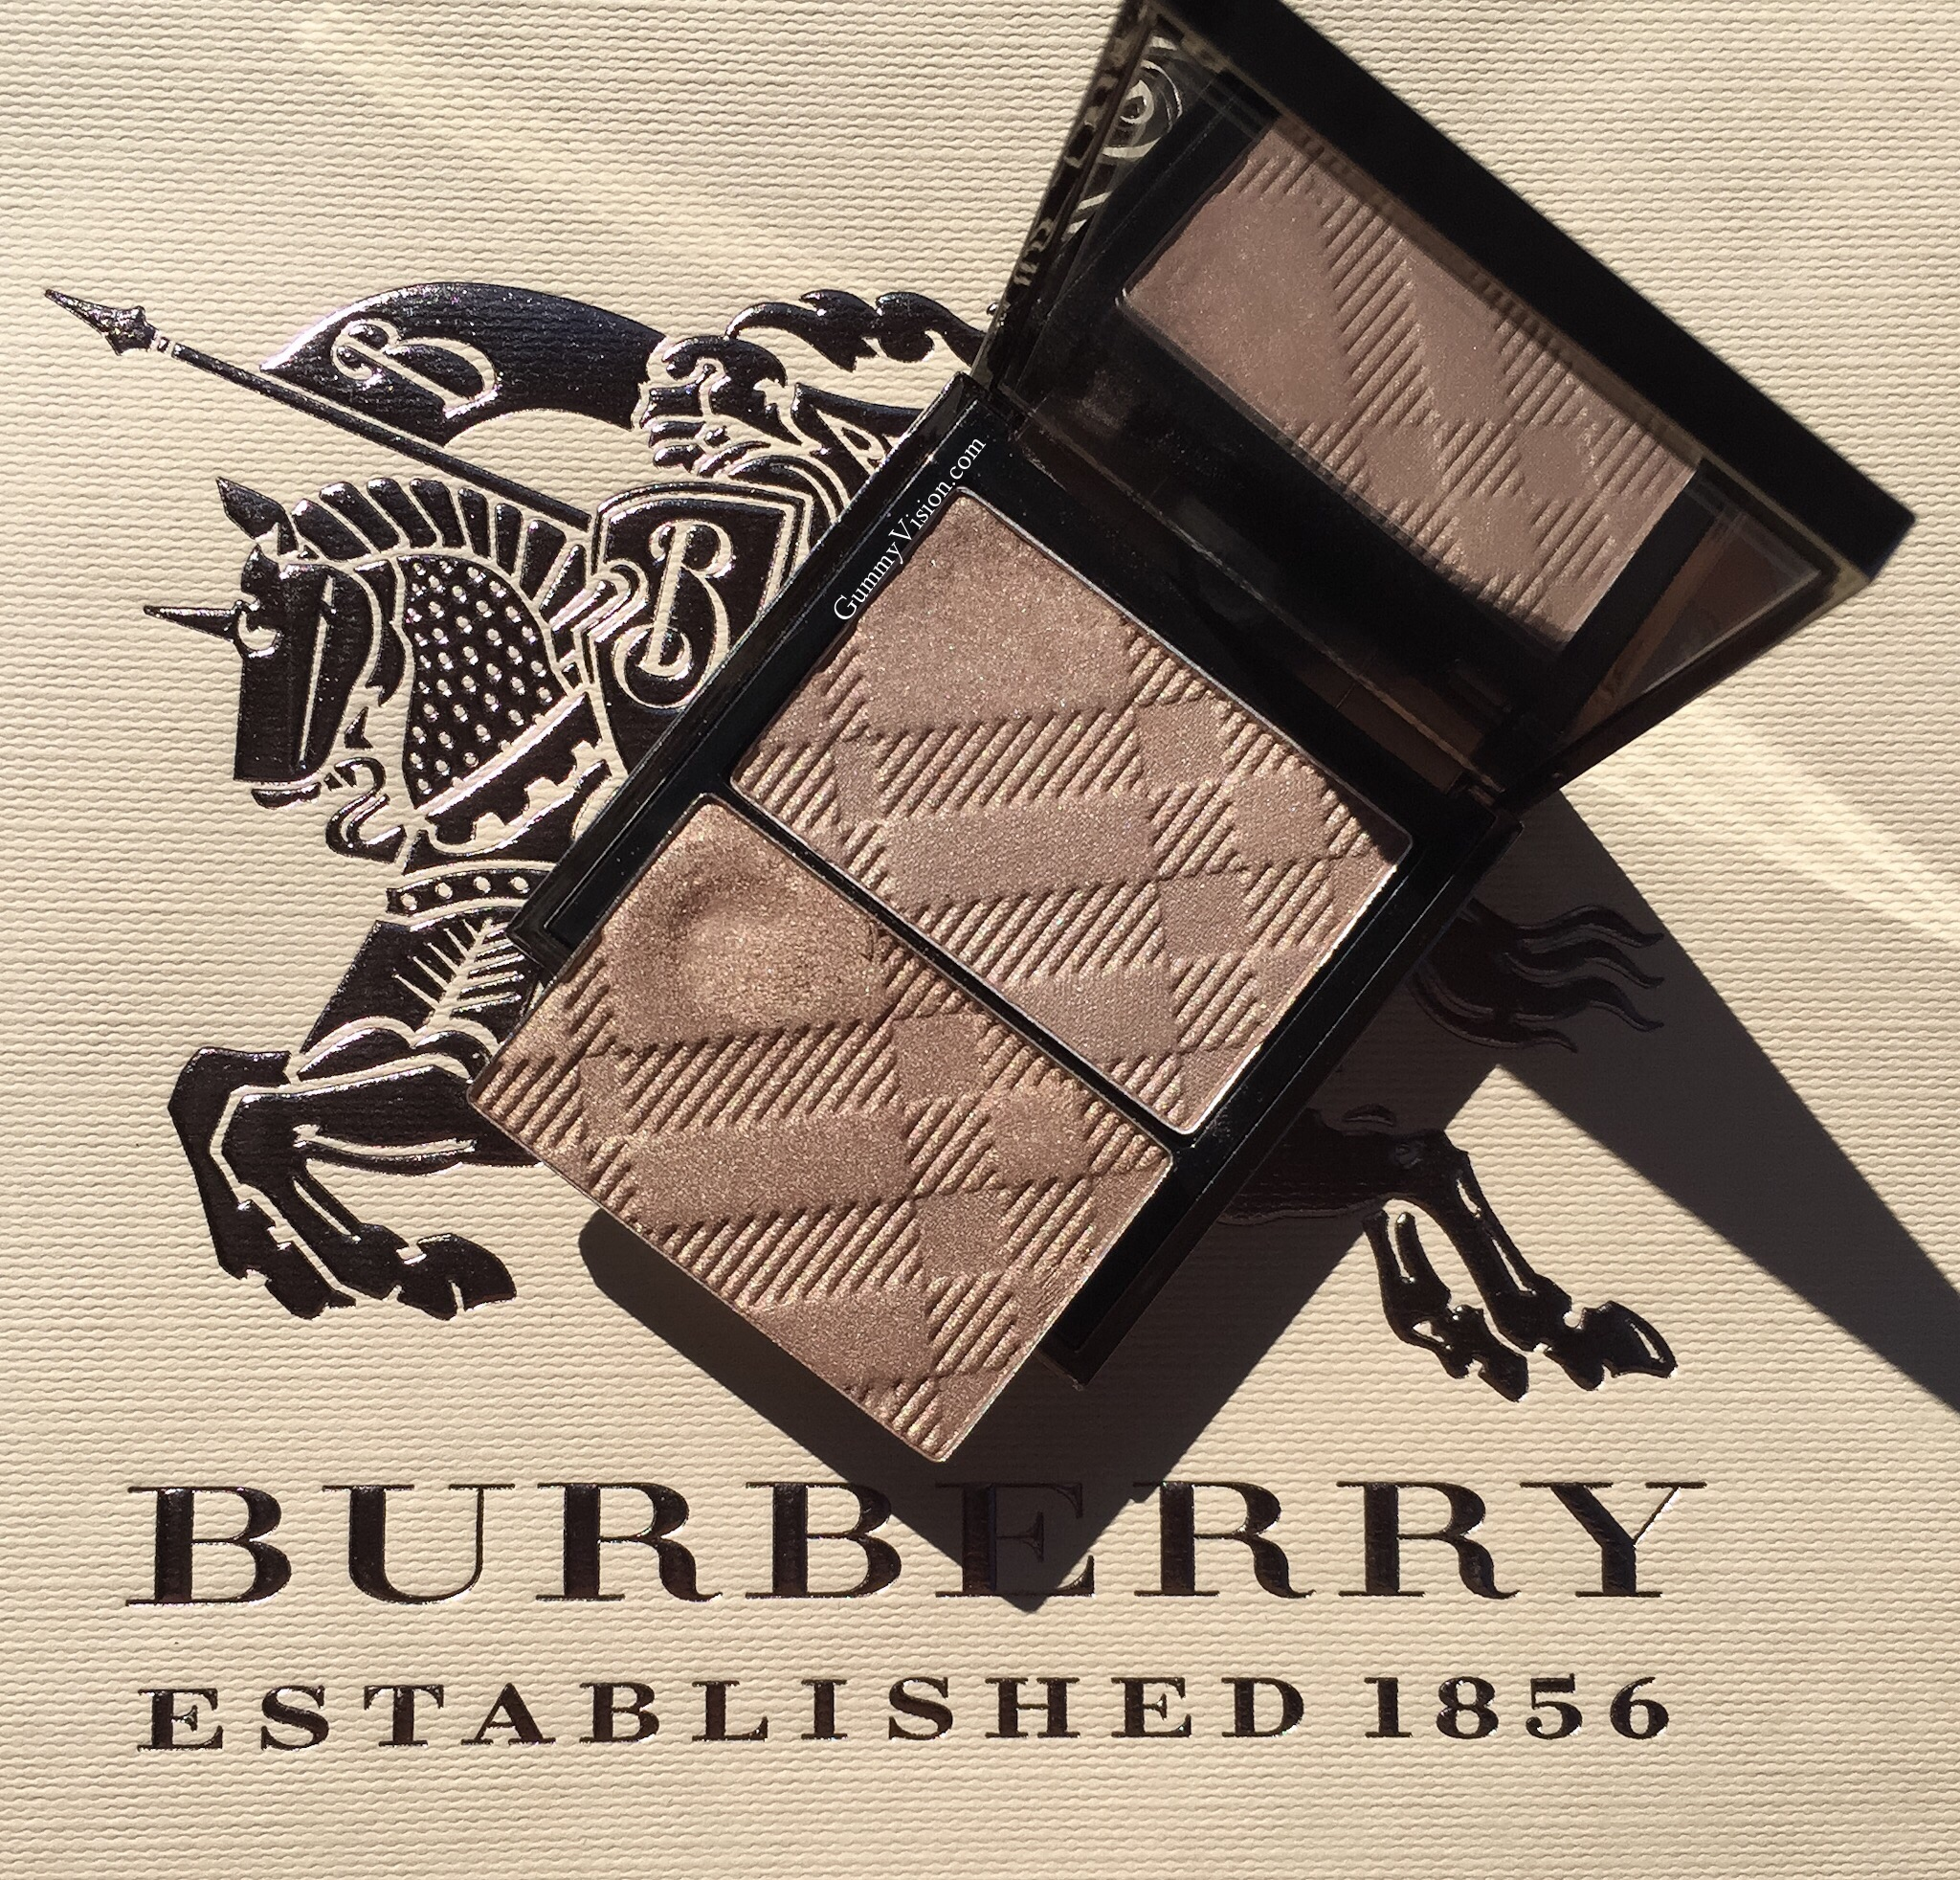 Burberry Pale Barley, new Wet and Dry Silk Eyesahdow (top) vs. Burberry Pale Barley, old version (bottom, depotted) - gummyvision.com